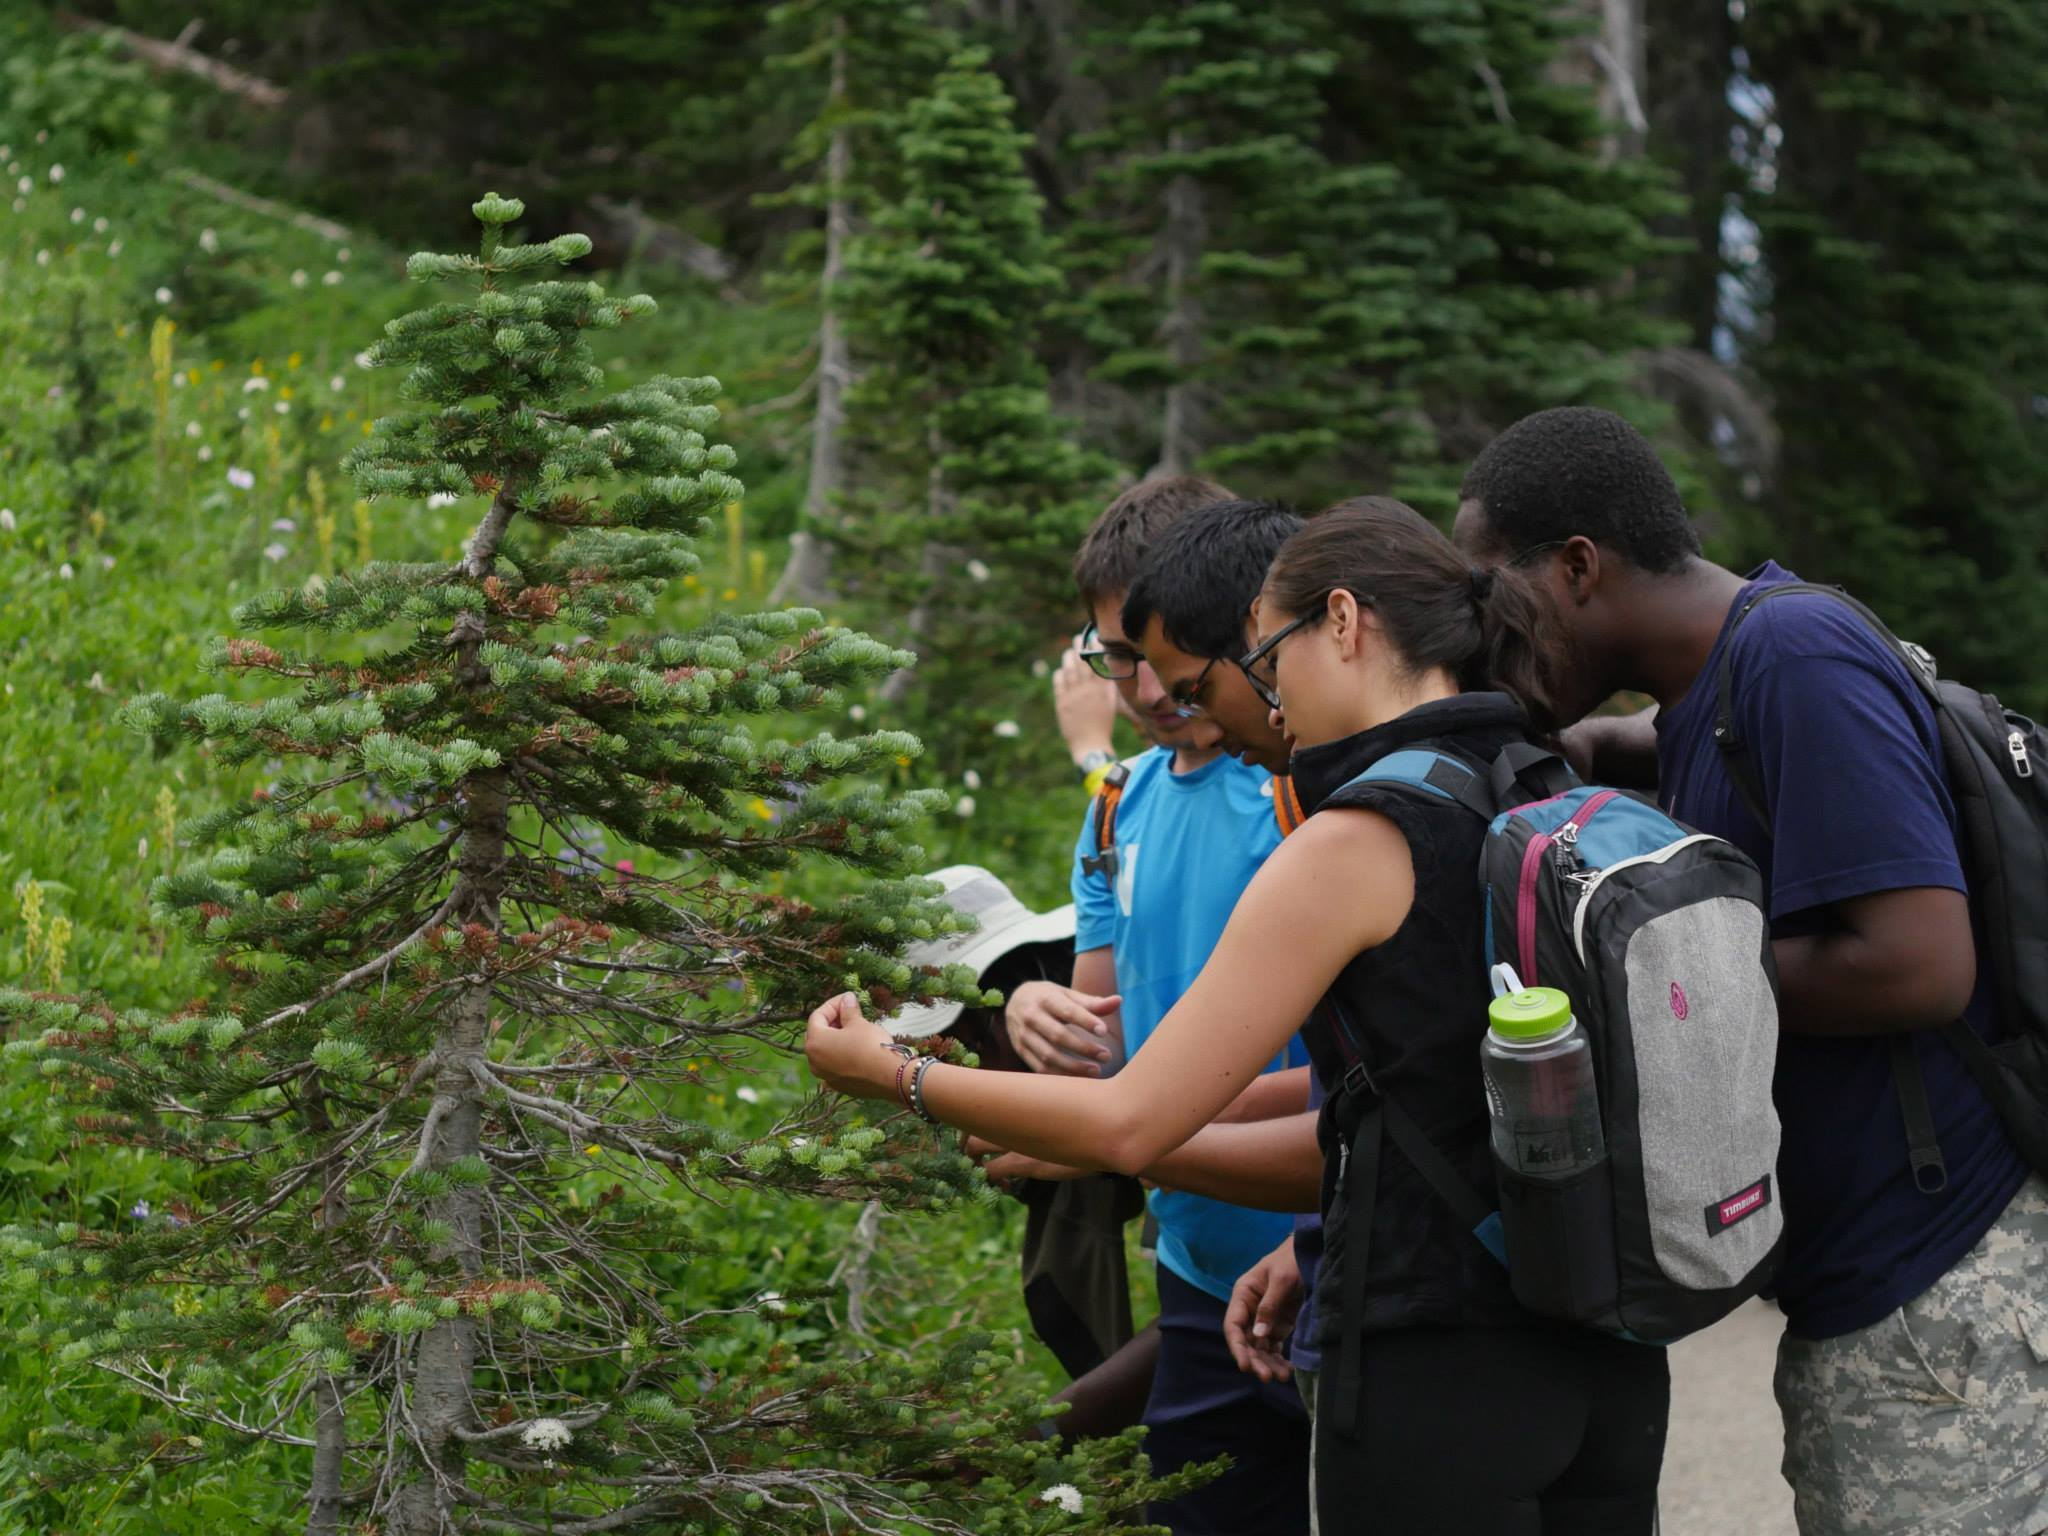 Doris Duke Conservation Scholars at UW are helping define how diverse groups shape conservation.